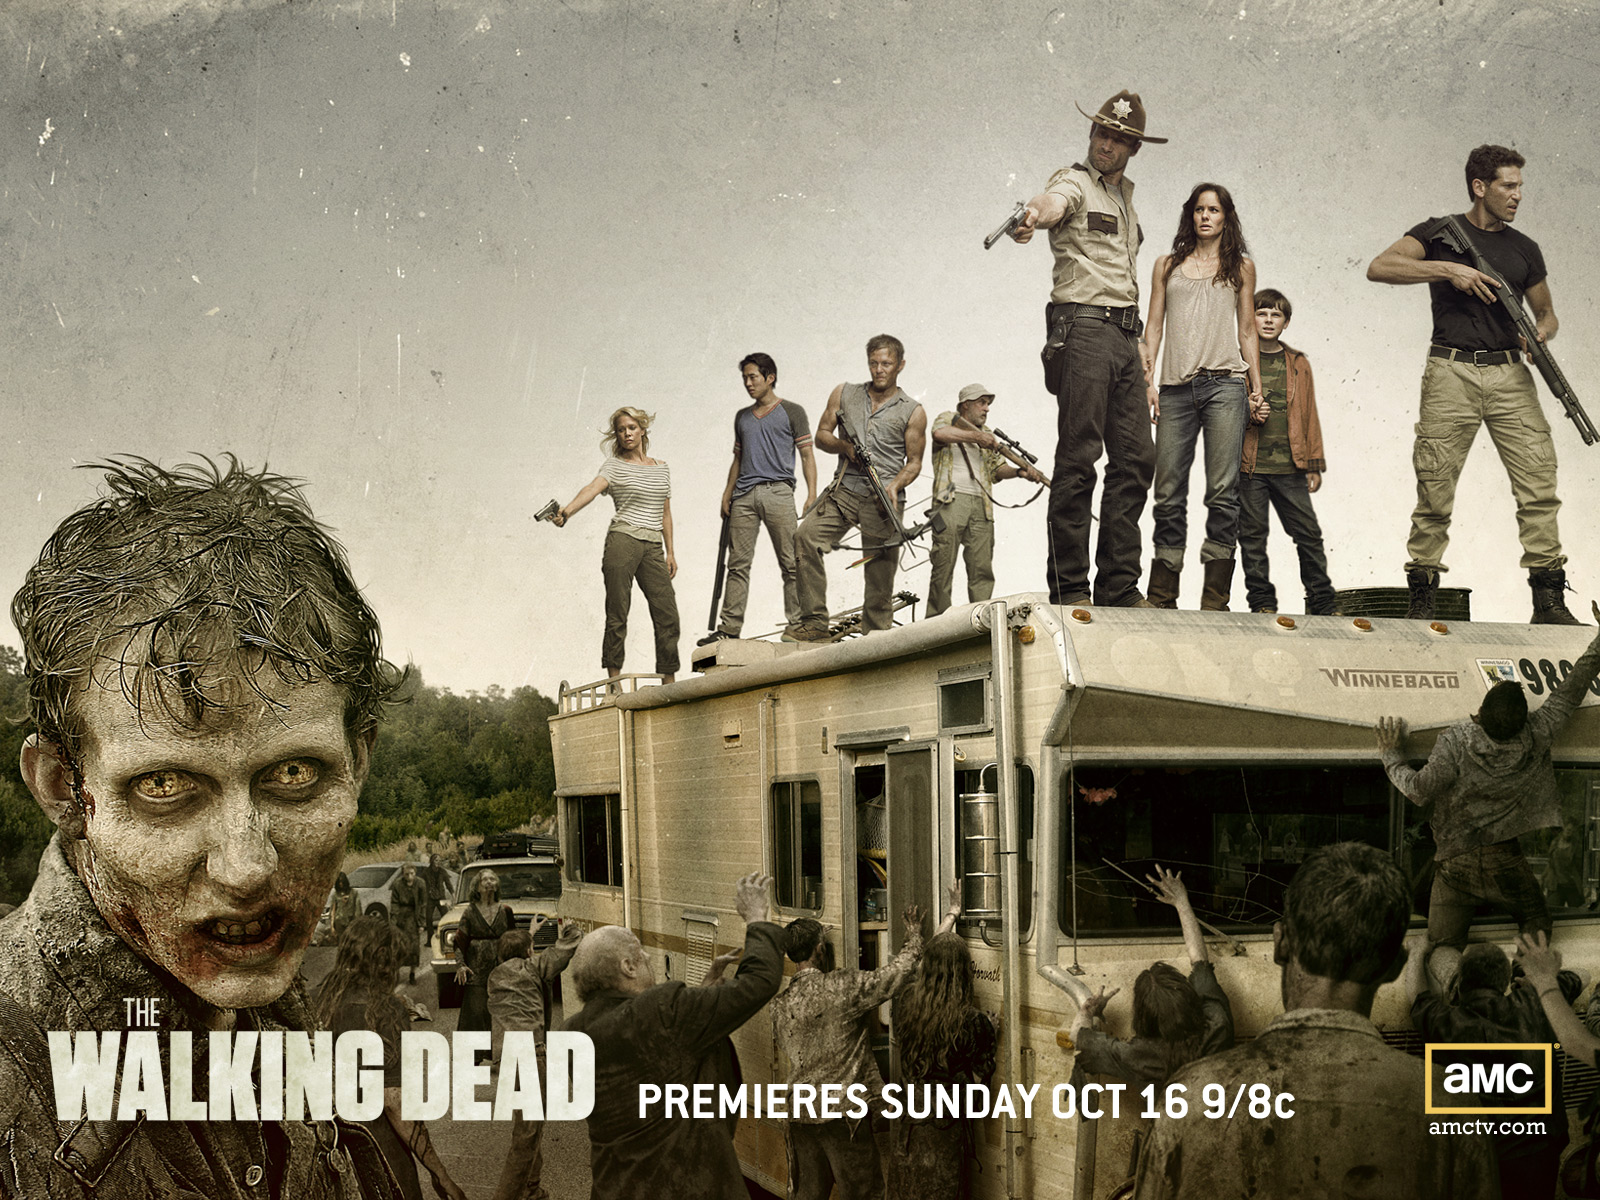 season-2-wallpaper-the-walking-dead-25689003-1600-1200 | kylegrant76